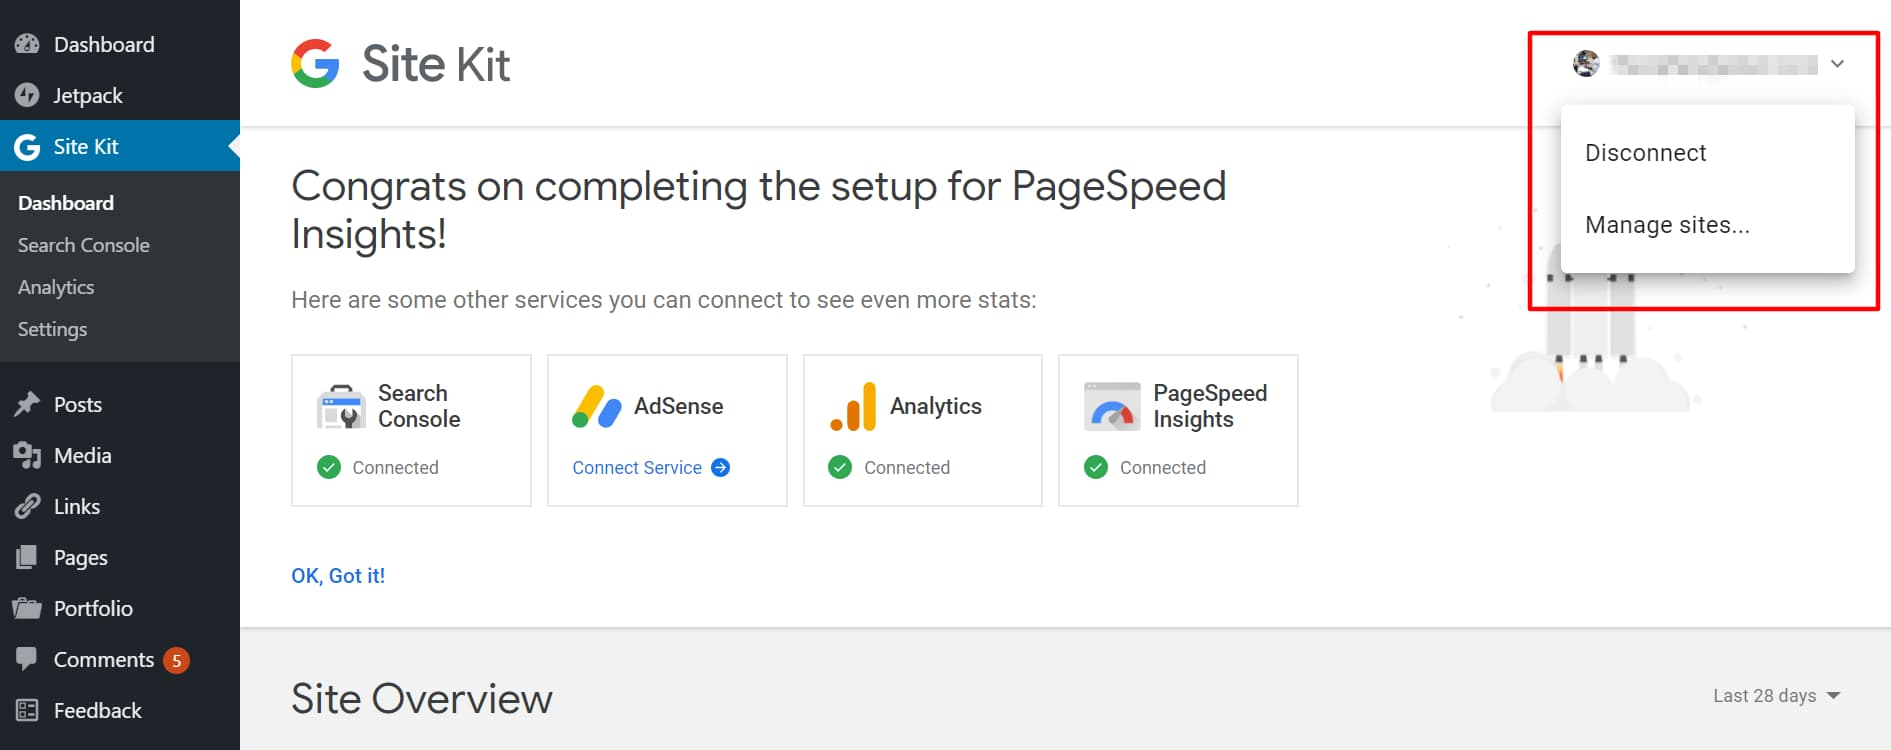 disconnect site kit from google and manage sites